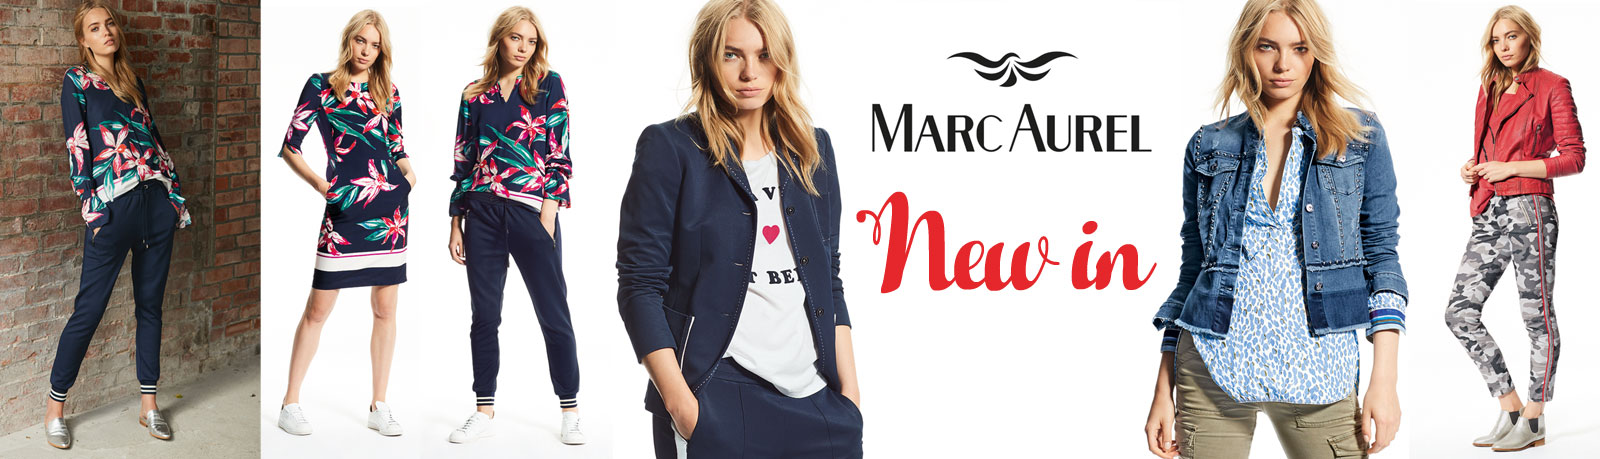 NEW IN: Neue Looks von Marc Aurel